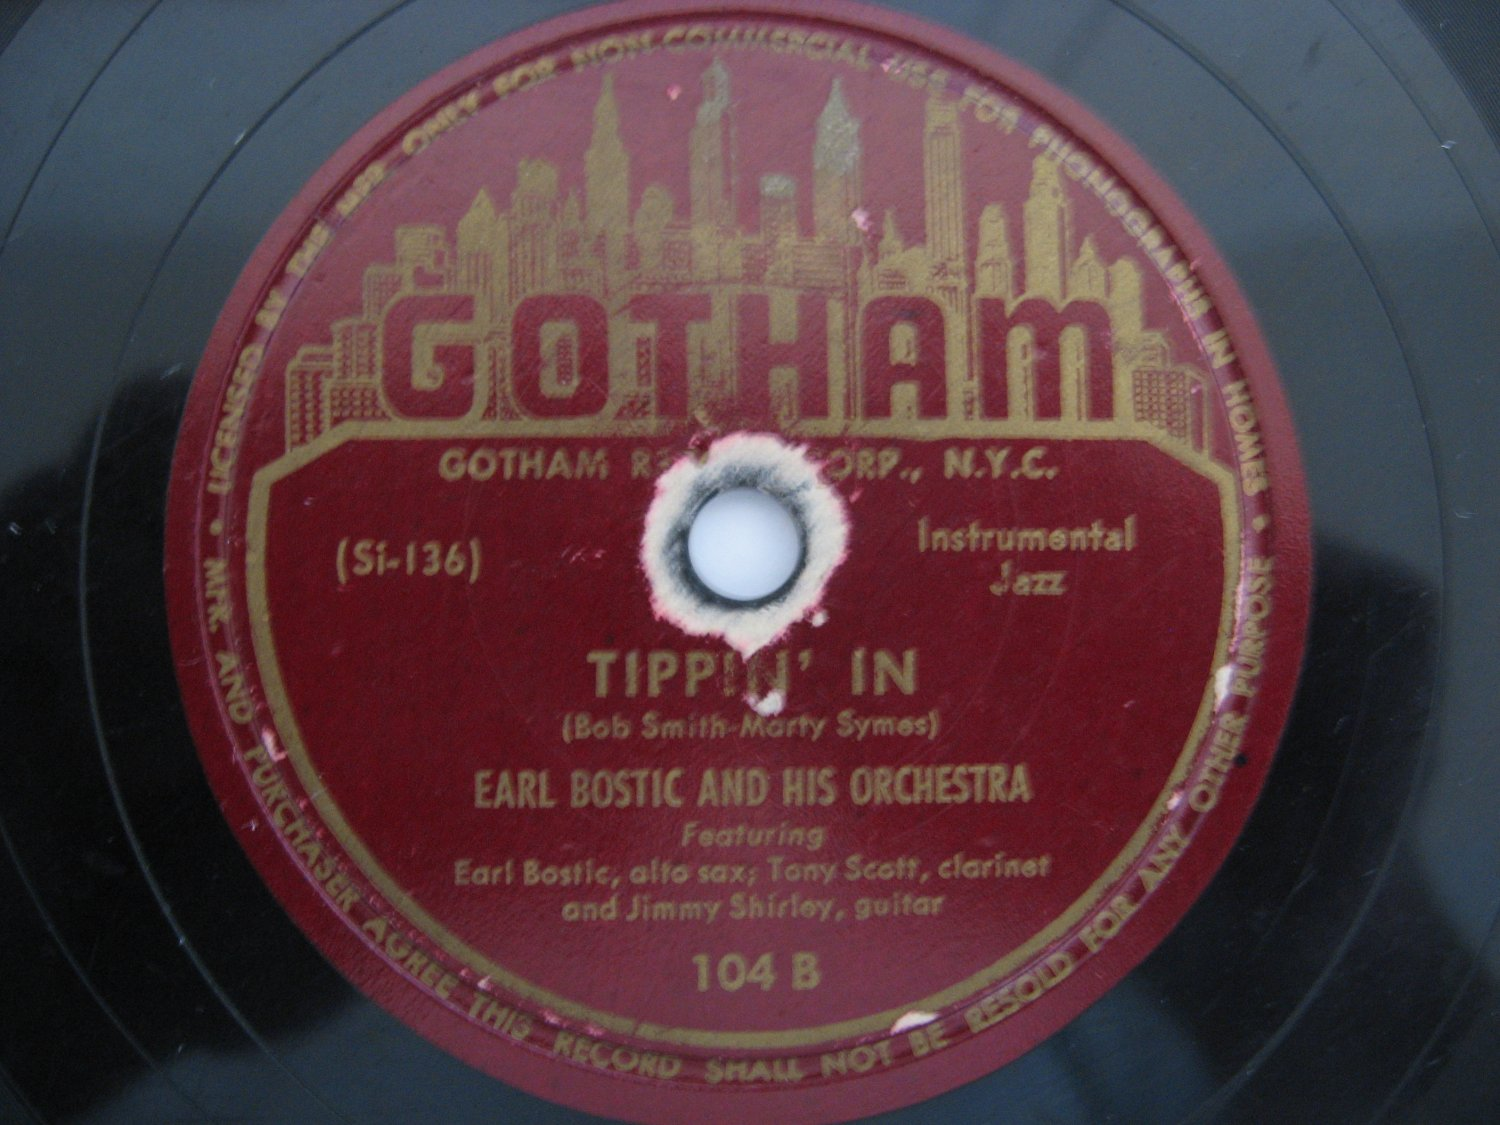 Earl Bostic & His Orchestra  -  That's The Groovy Thing - Tippin In - 78rpm - Circa 1946